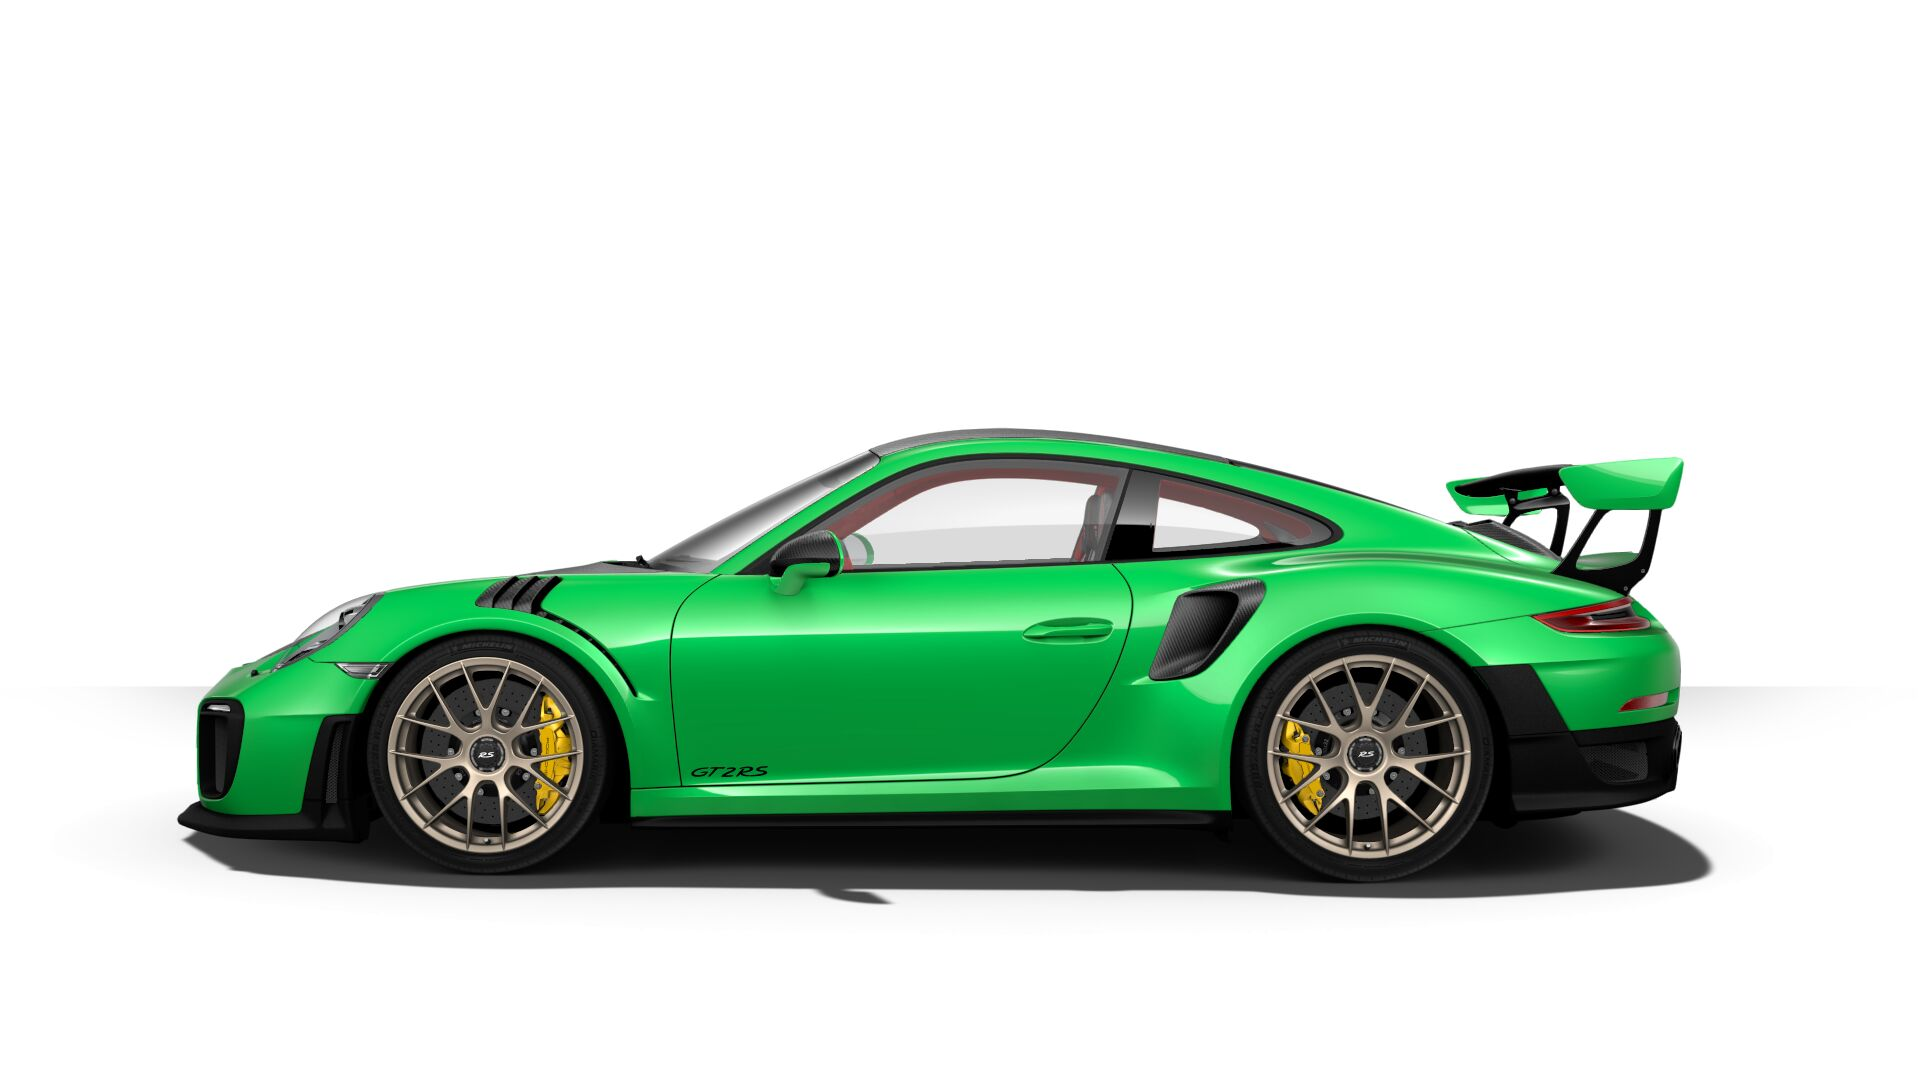 paint-to-sample-2018-porsche-911-gt2-rs-hits-configurator-at-12830_2 Interesting Porsche 911 Gt2 and Gt3 Cars Trend